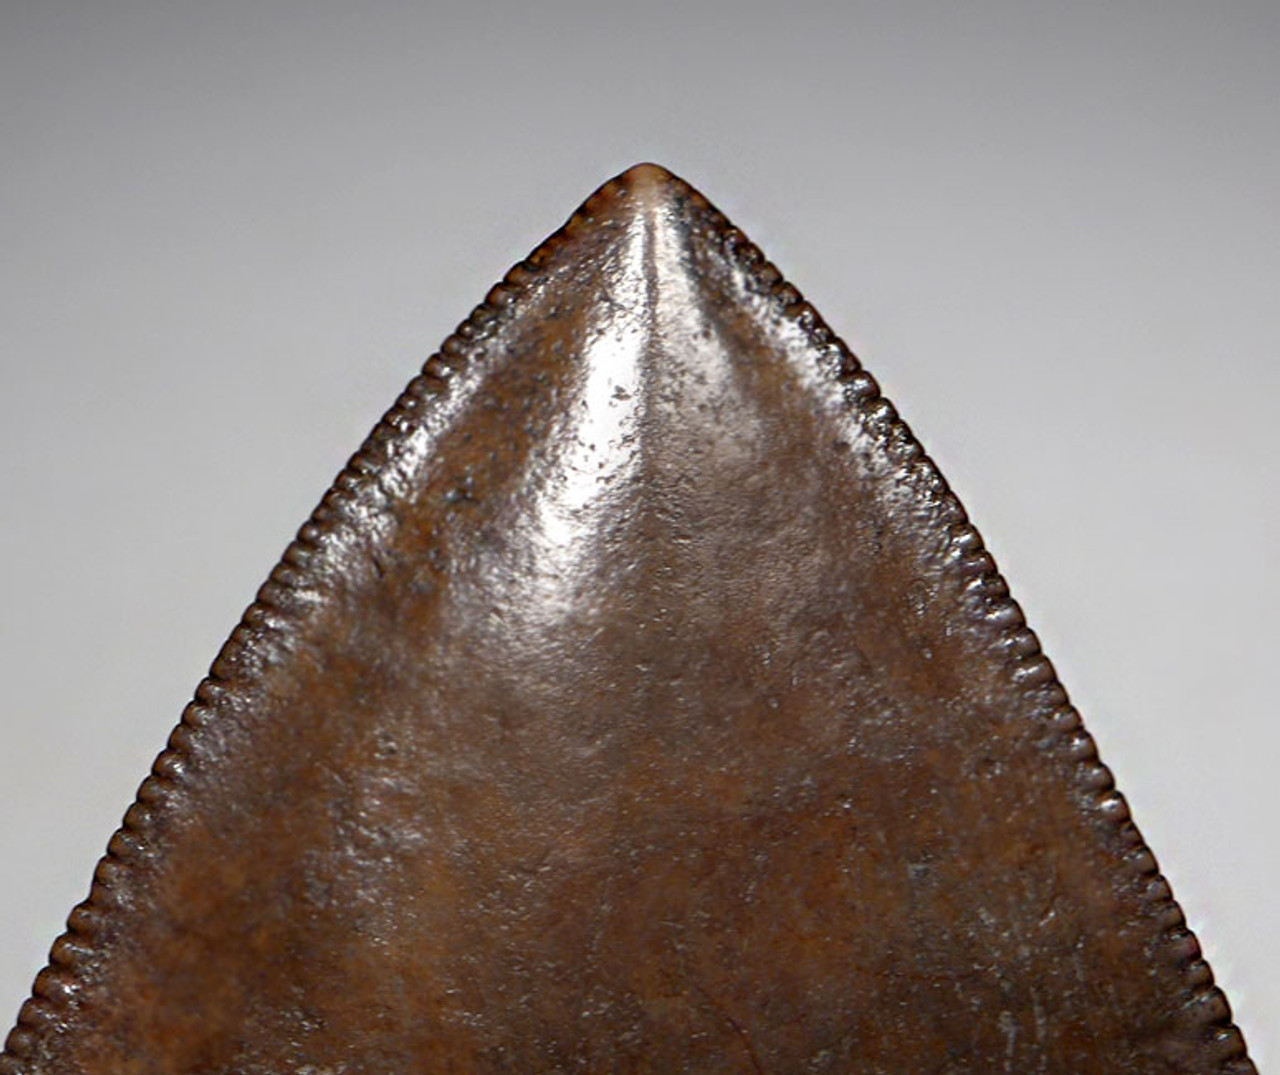 SH6-395 - CHOICE COLLECTOR GRADE 4.25 INCH MEGALODON SHARK TOOTH WITH MOTTLED  COPPER BROWN AND SILVER ENAMEL